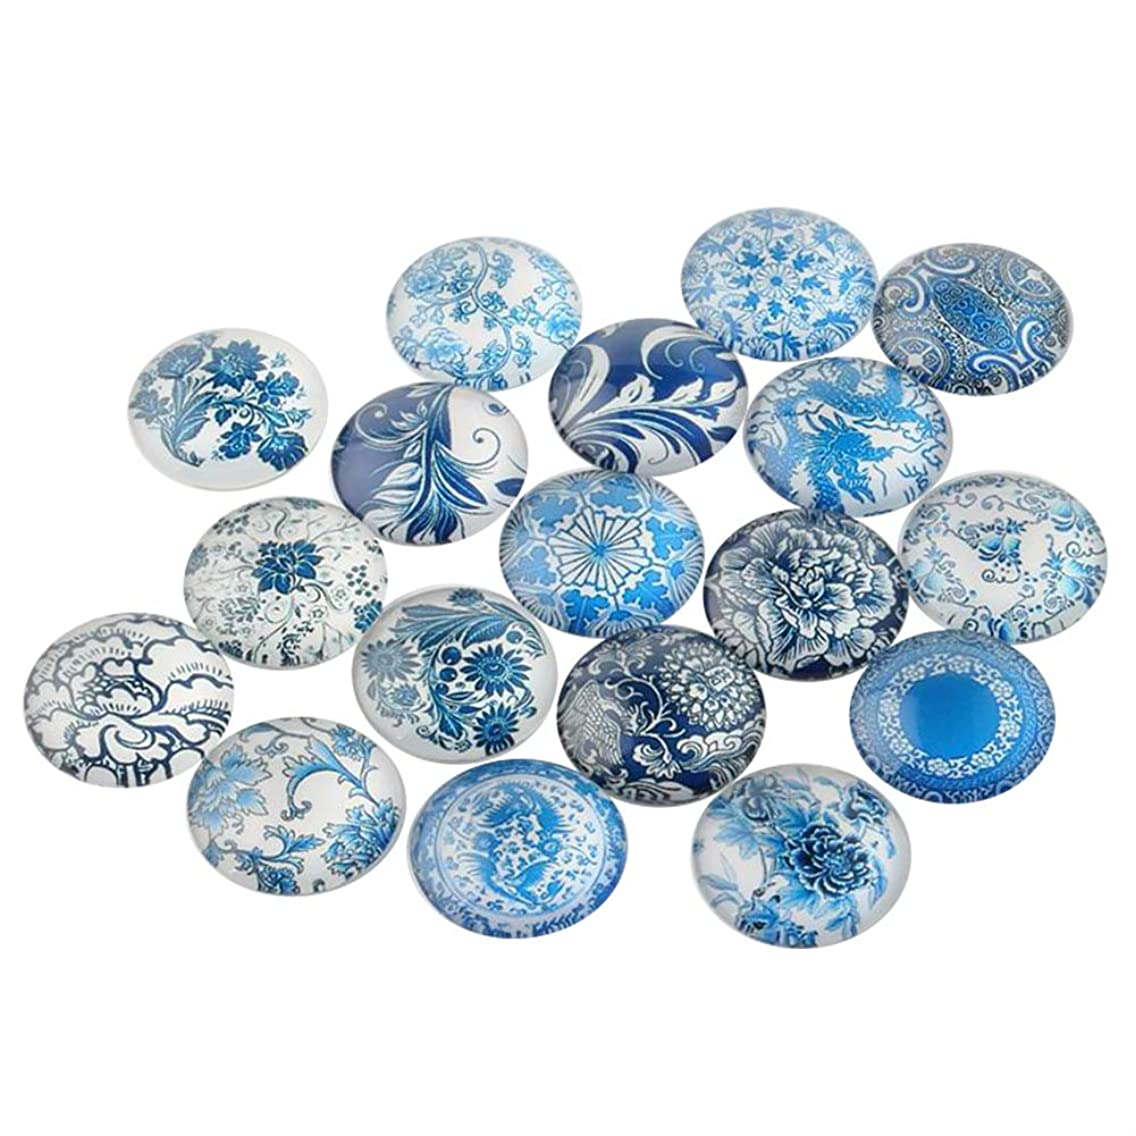 ARRICRAFT 200pcs Floral Printed Glass Cabochons 10mm Flat Back Half Round Domed Cabochon Beads for Crafting DIY Jewelry Making